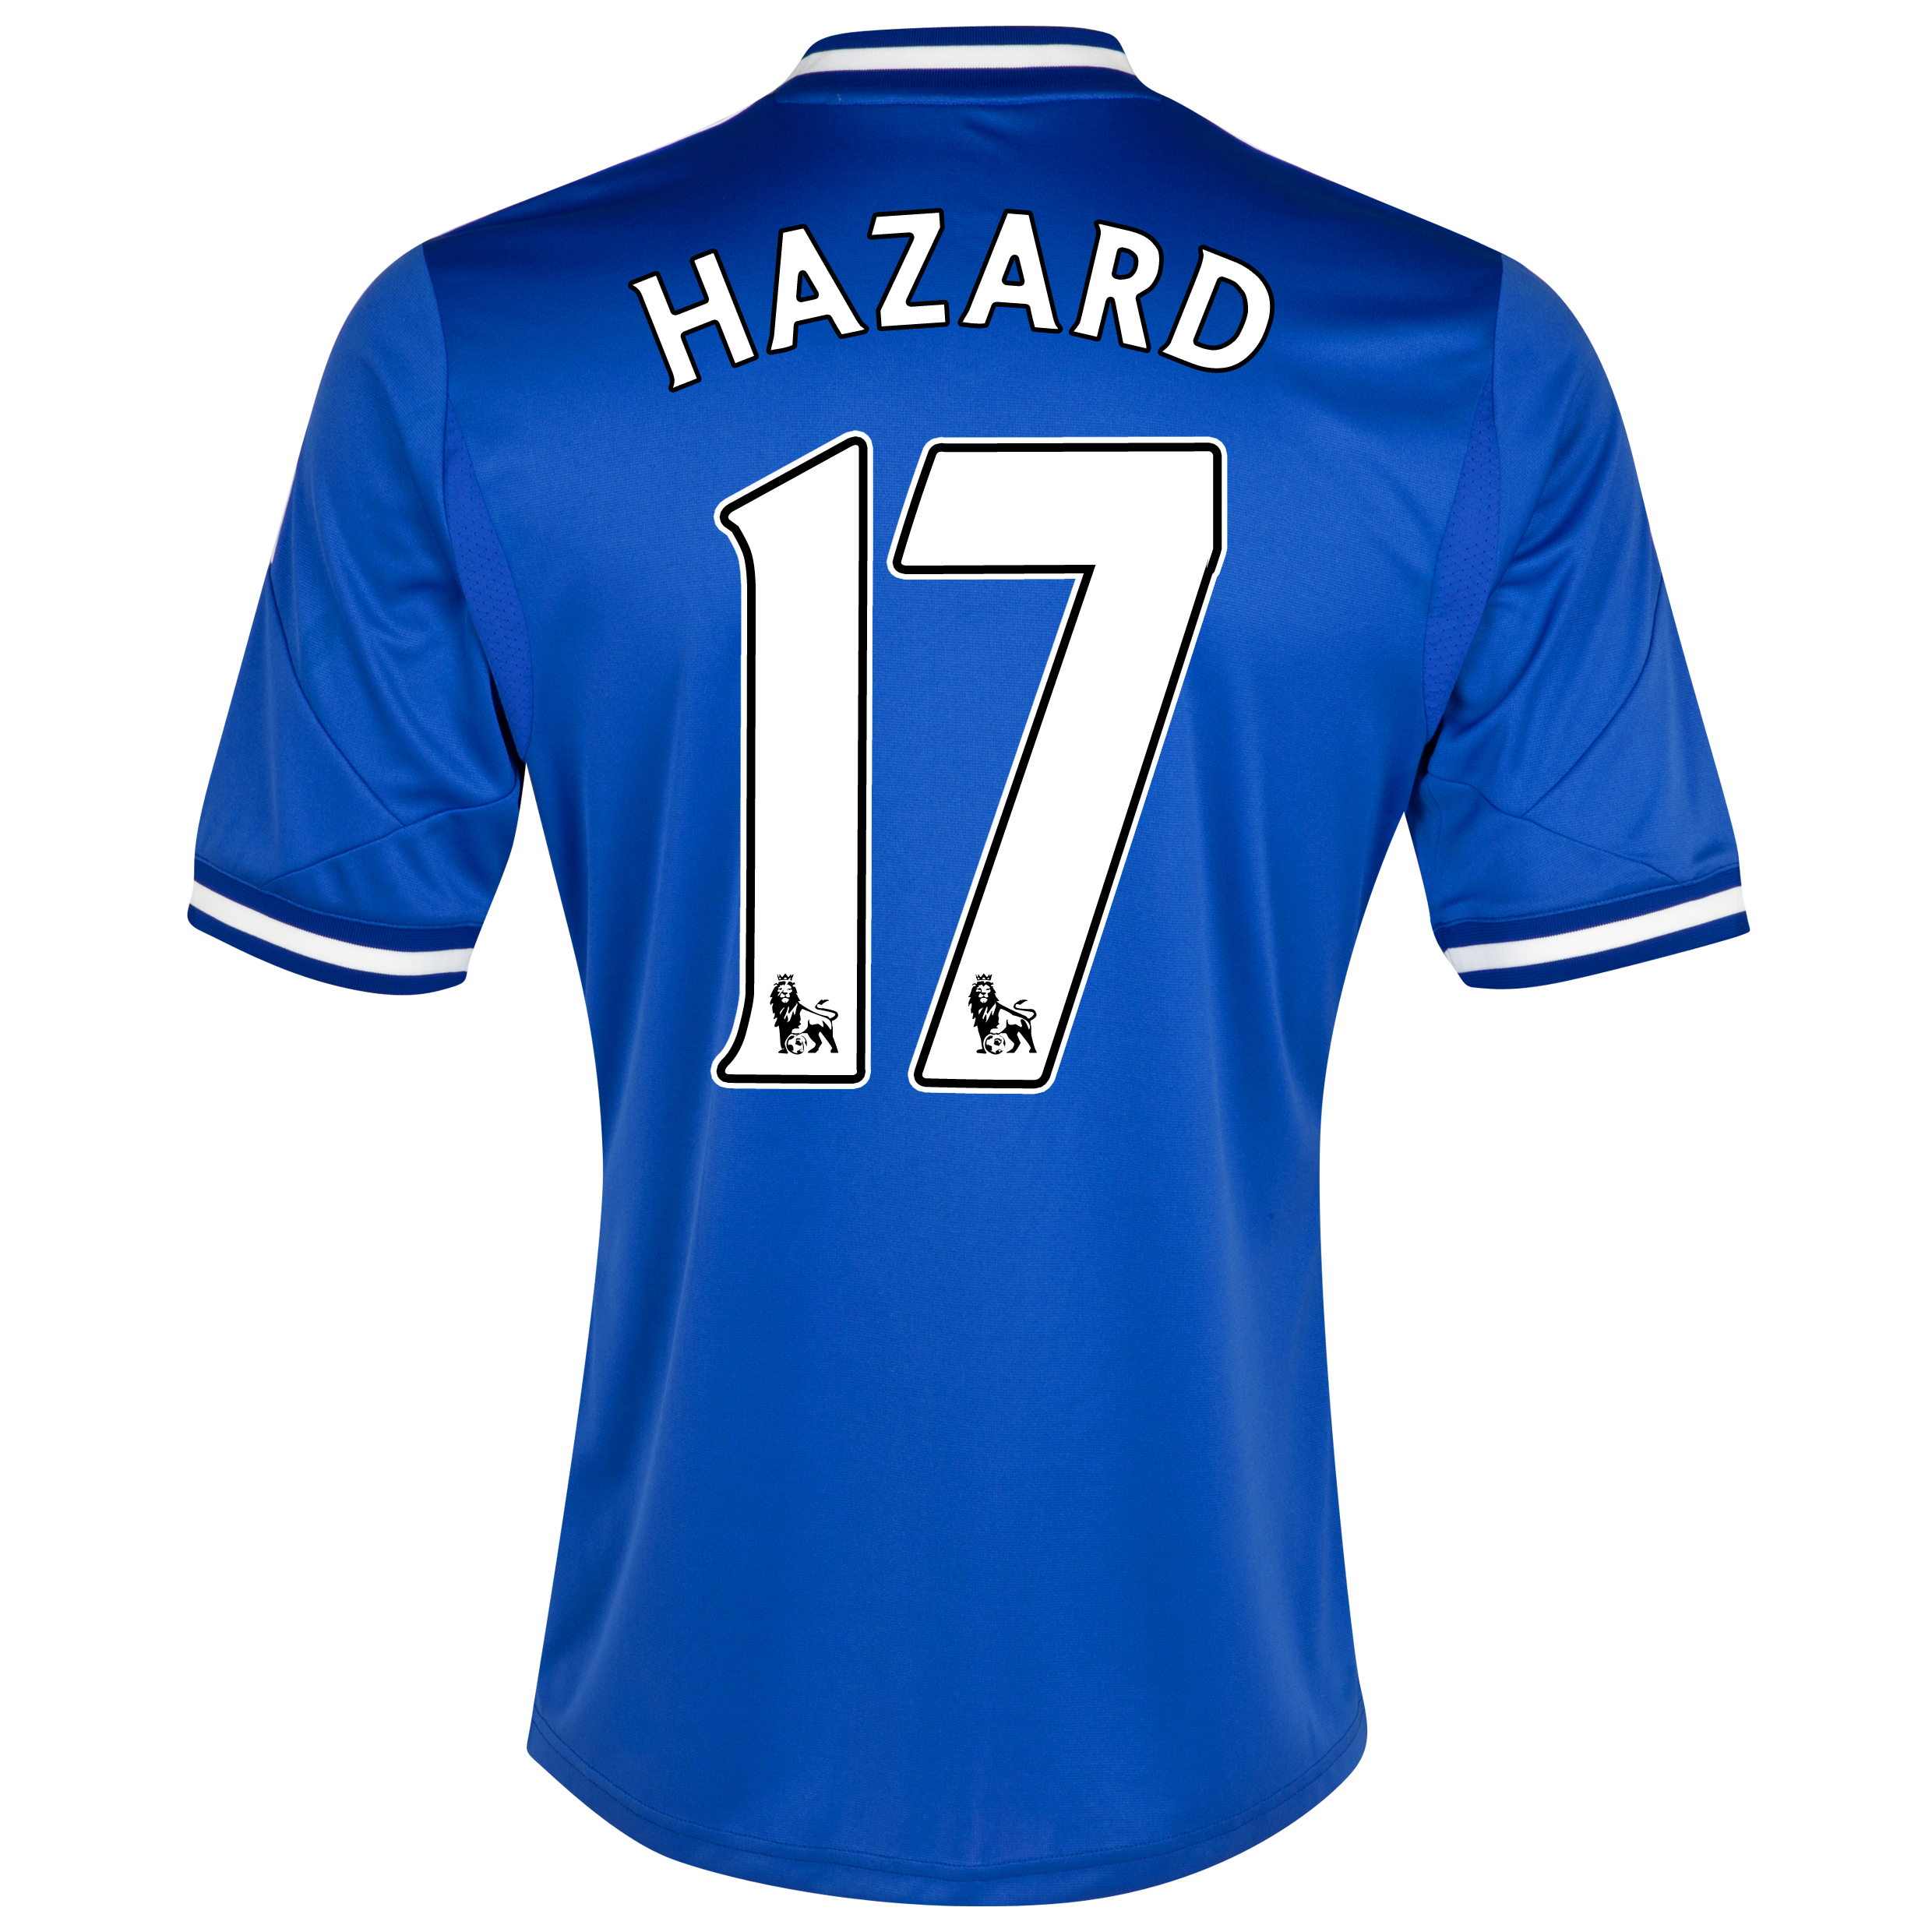 Chelsea Home Shirt 2013/14 with Hazard 17 printing